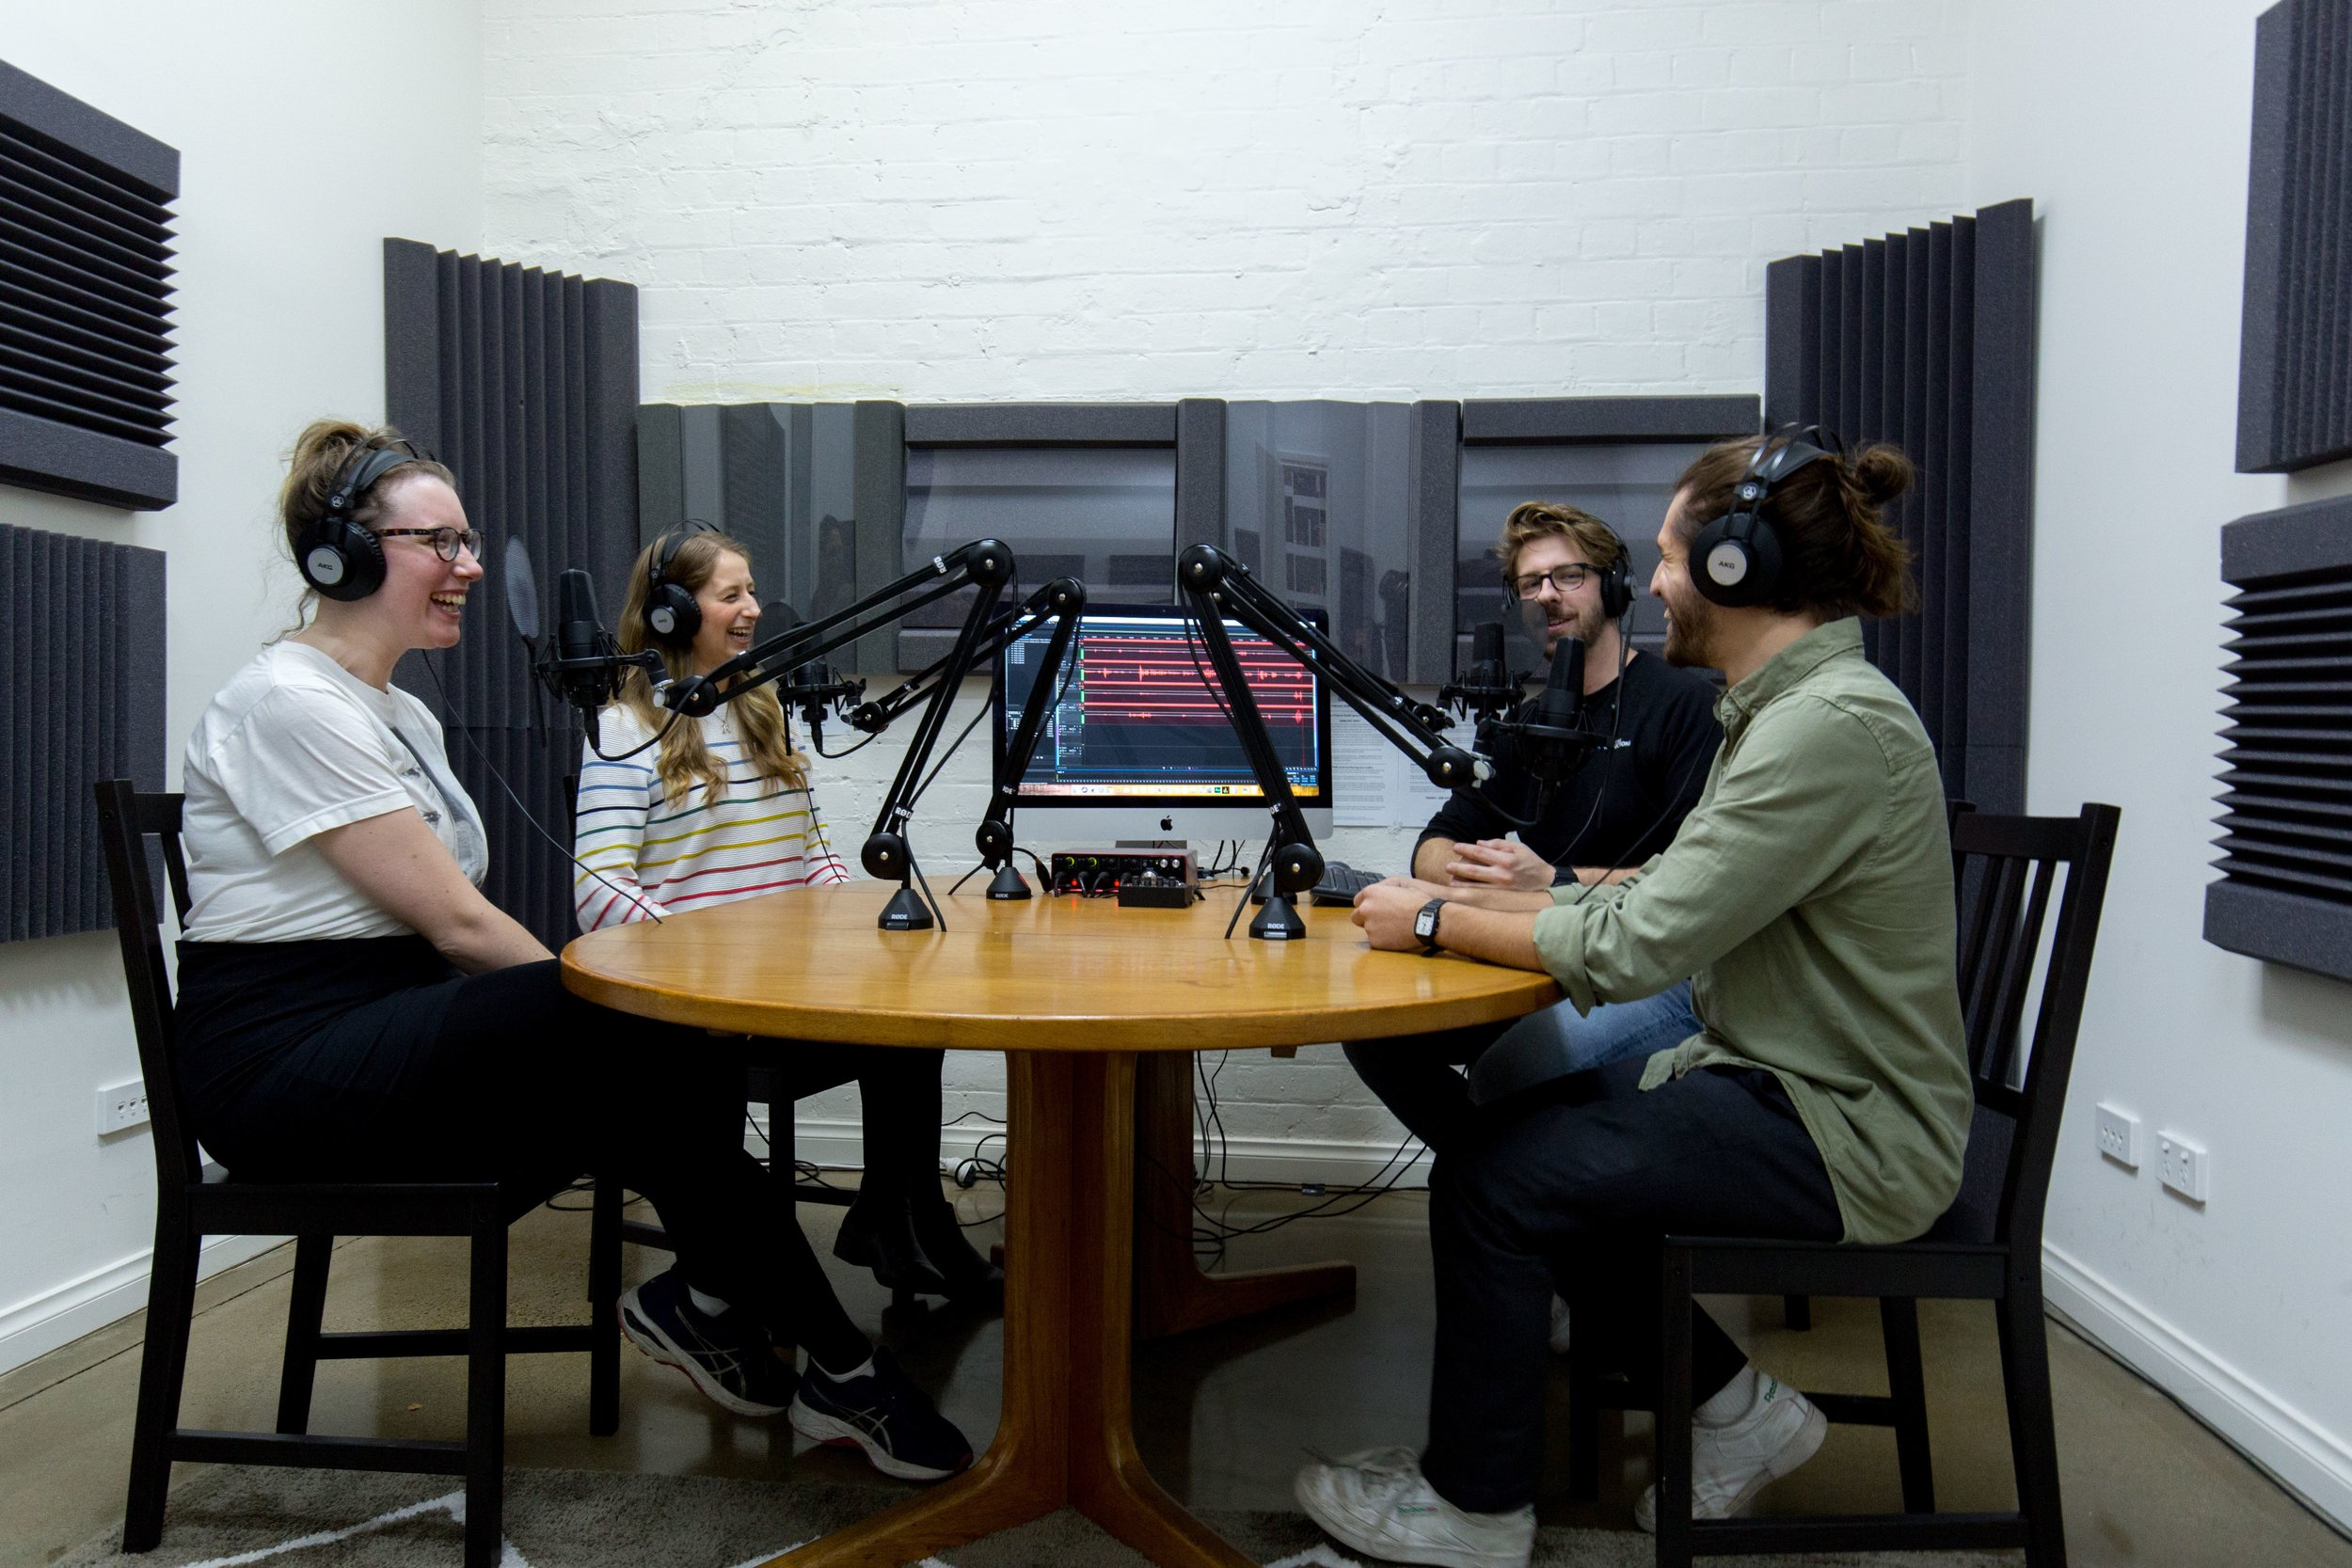 podcast, podcasting, podcast studio, studio hire, studio, brunswick, melbourne, brunswick east, podcast studio hire